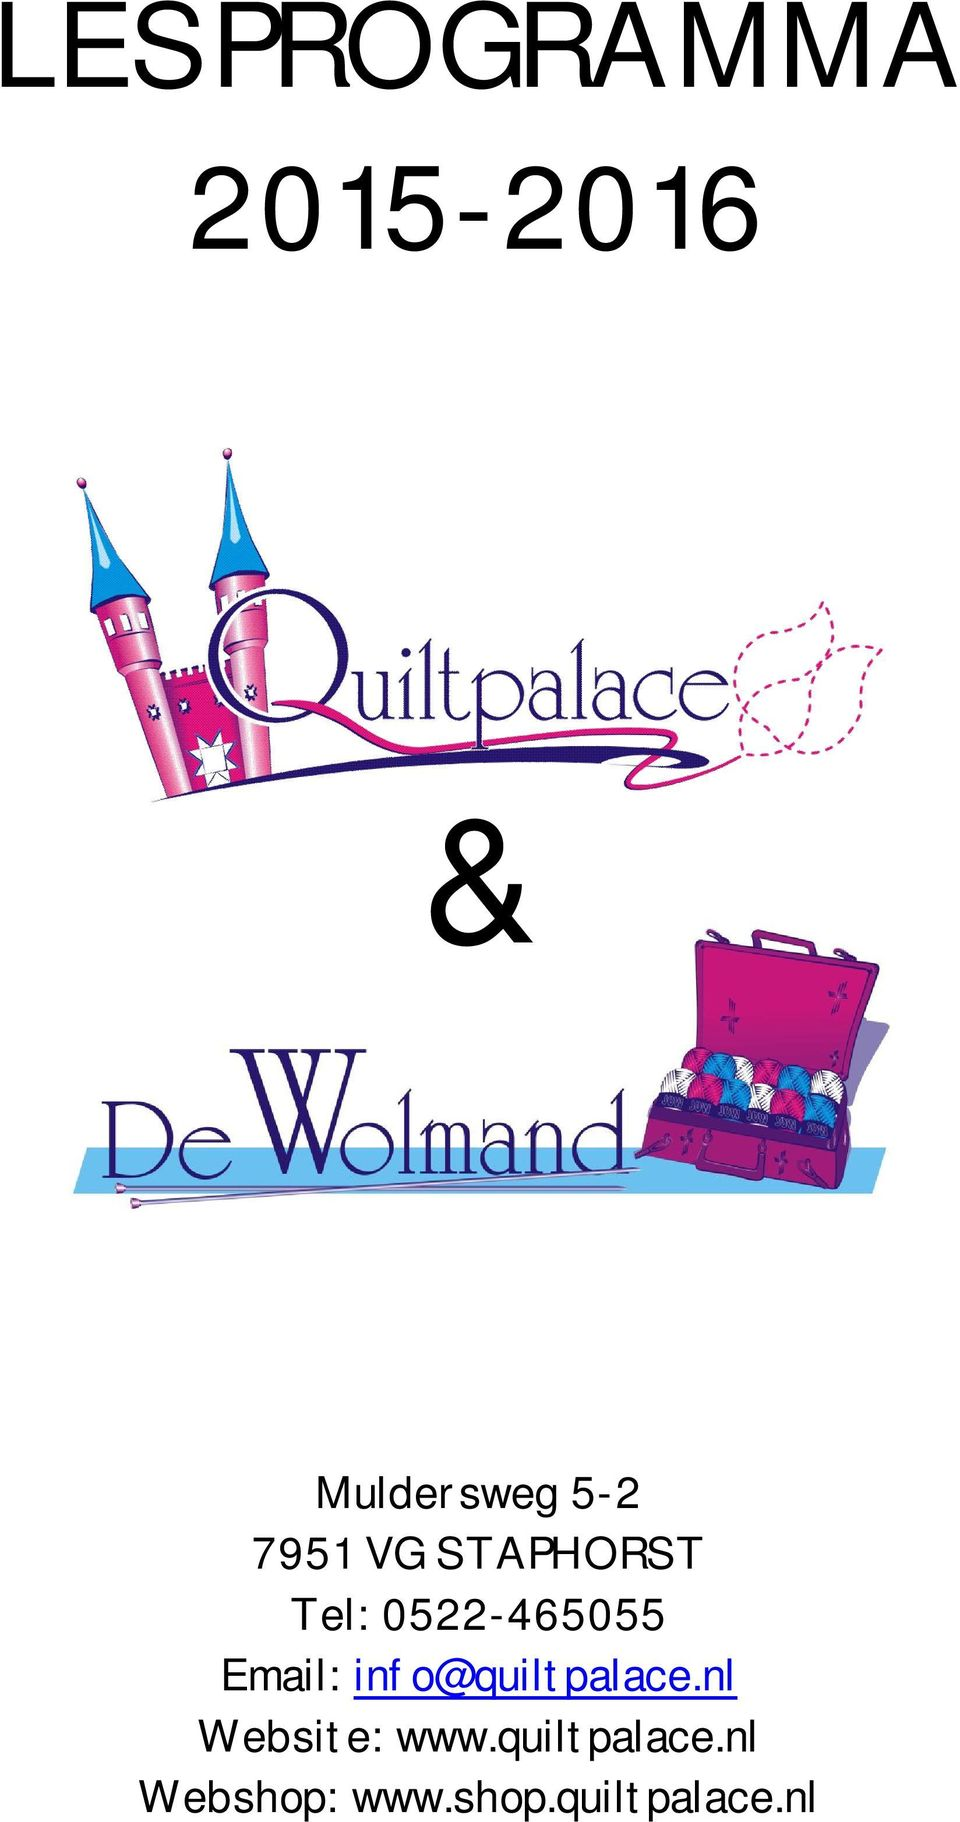 Email: info@quiltpalace.nl Website: www.